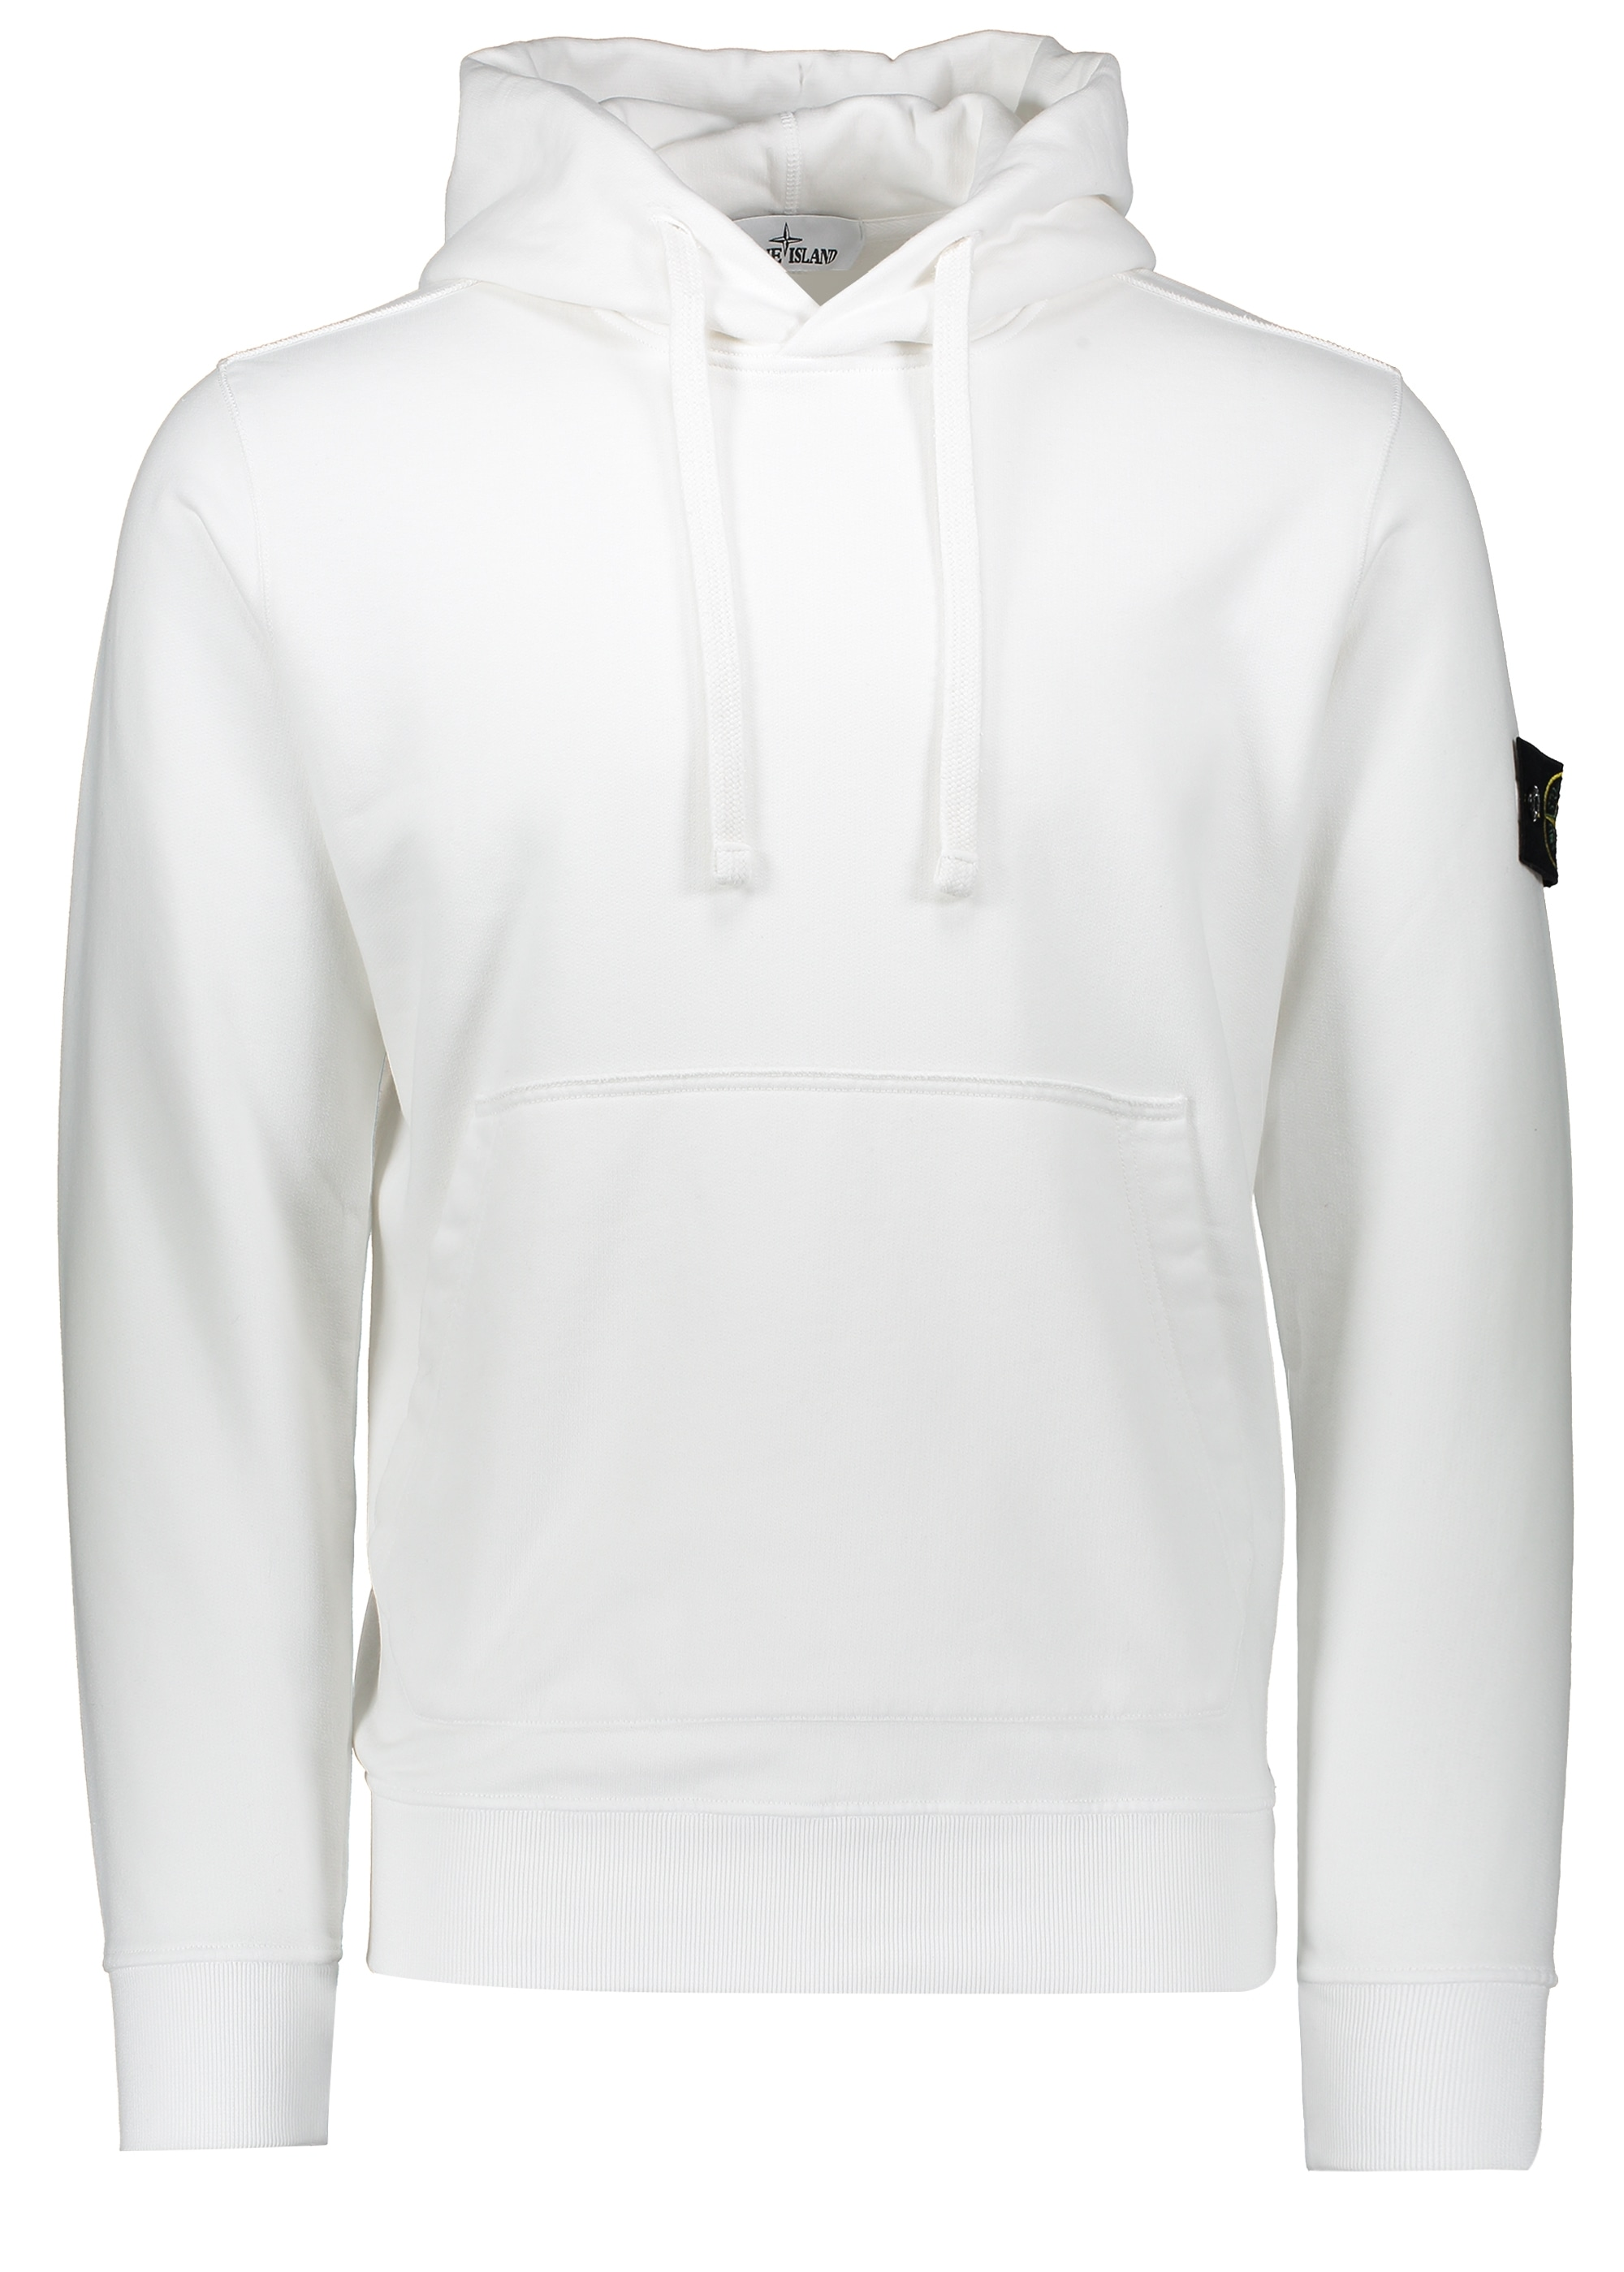 8cb21f9fcaa Stone Island Hooded Sweatshirt - White - Hoodies from Triads UK